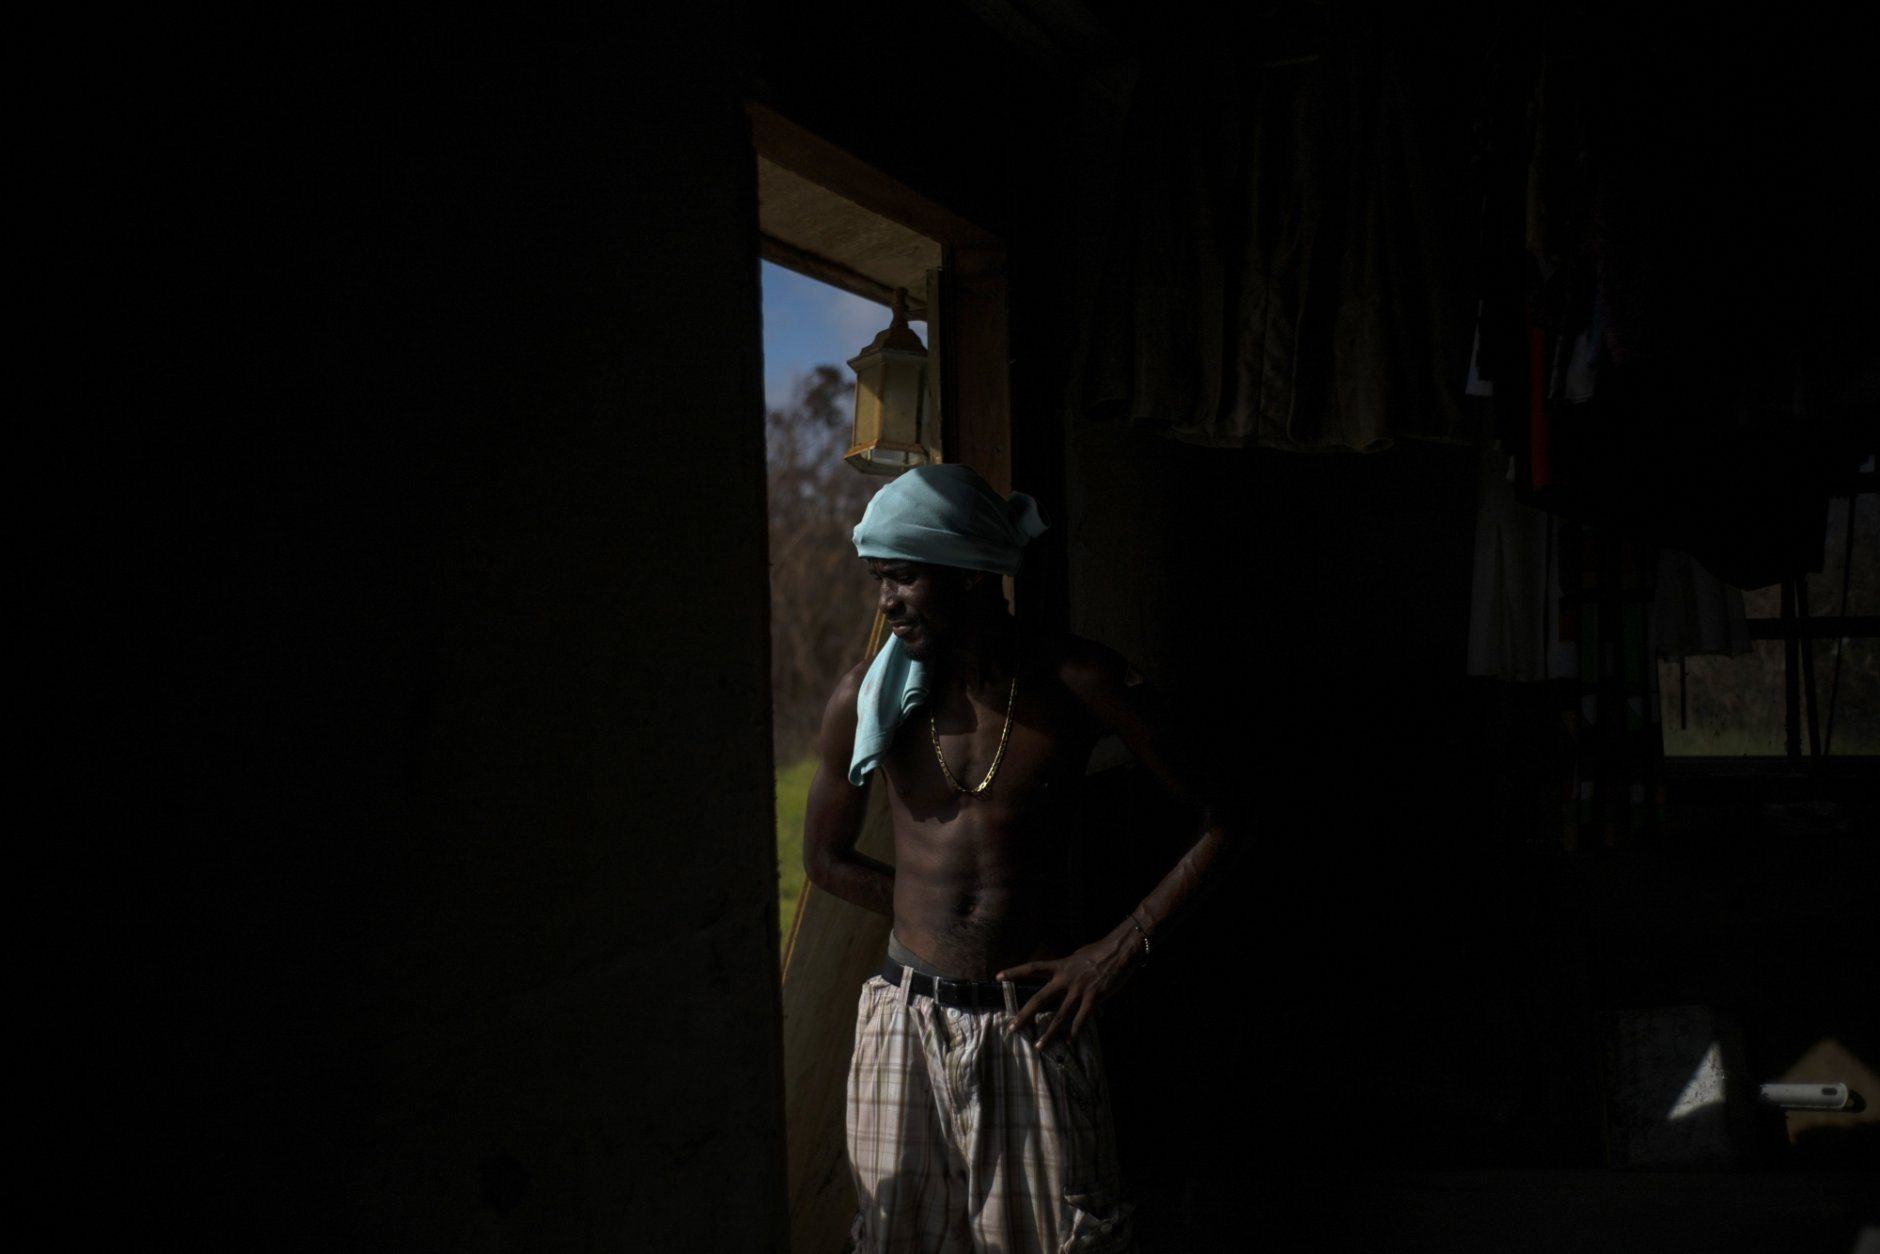 """Trevon Laing stands on the frame of his house destroyed by Hurricane Dorian, in Gold Rock Creek, Grand Bahama, Bahamas, Thursday Sept. 12, 2019. Trevor says """"After the hurricane they had me for dead, My momma was crying."""" When he returned, he said he found his brother crying on the front porch.""""I'm like, 'Hey, I'm not dead! You guys have no faith in me. I'm a survivor,'"""" he said, adding with a laugh, """"He was shocked and mad at the same time."""" (AP Photo / Ramon Espinosa)"""